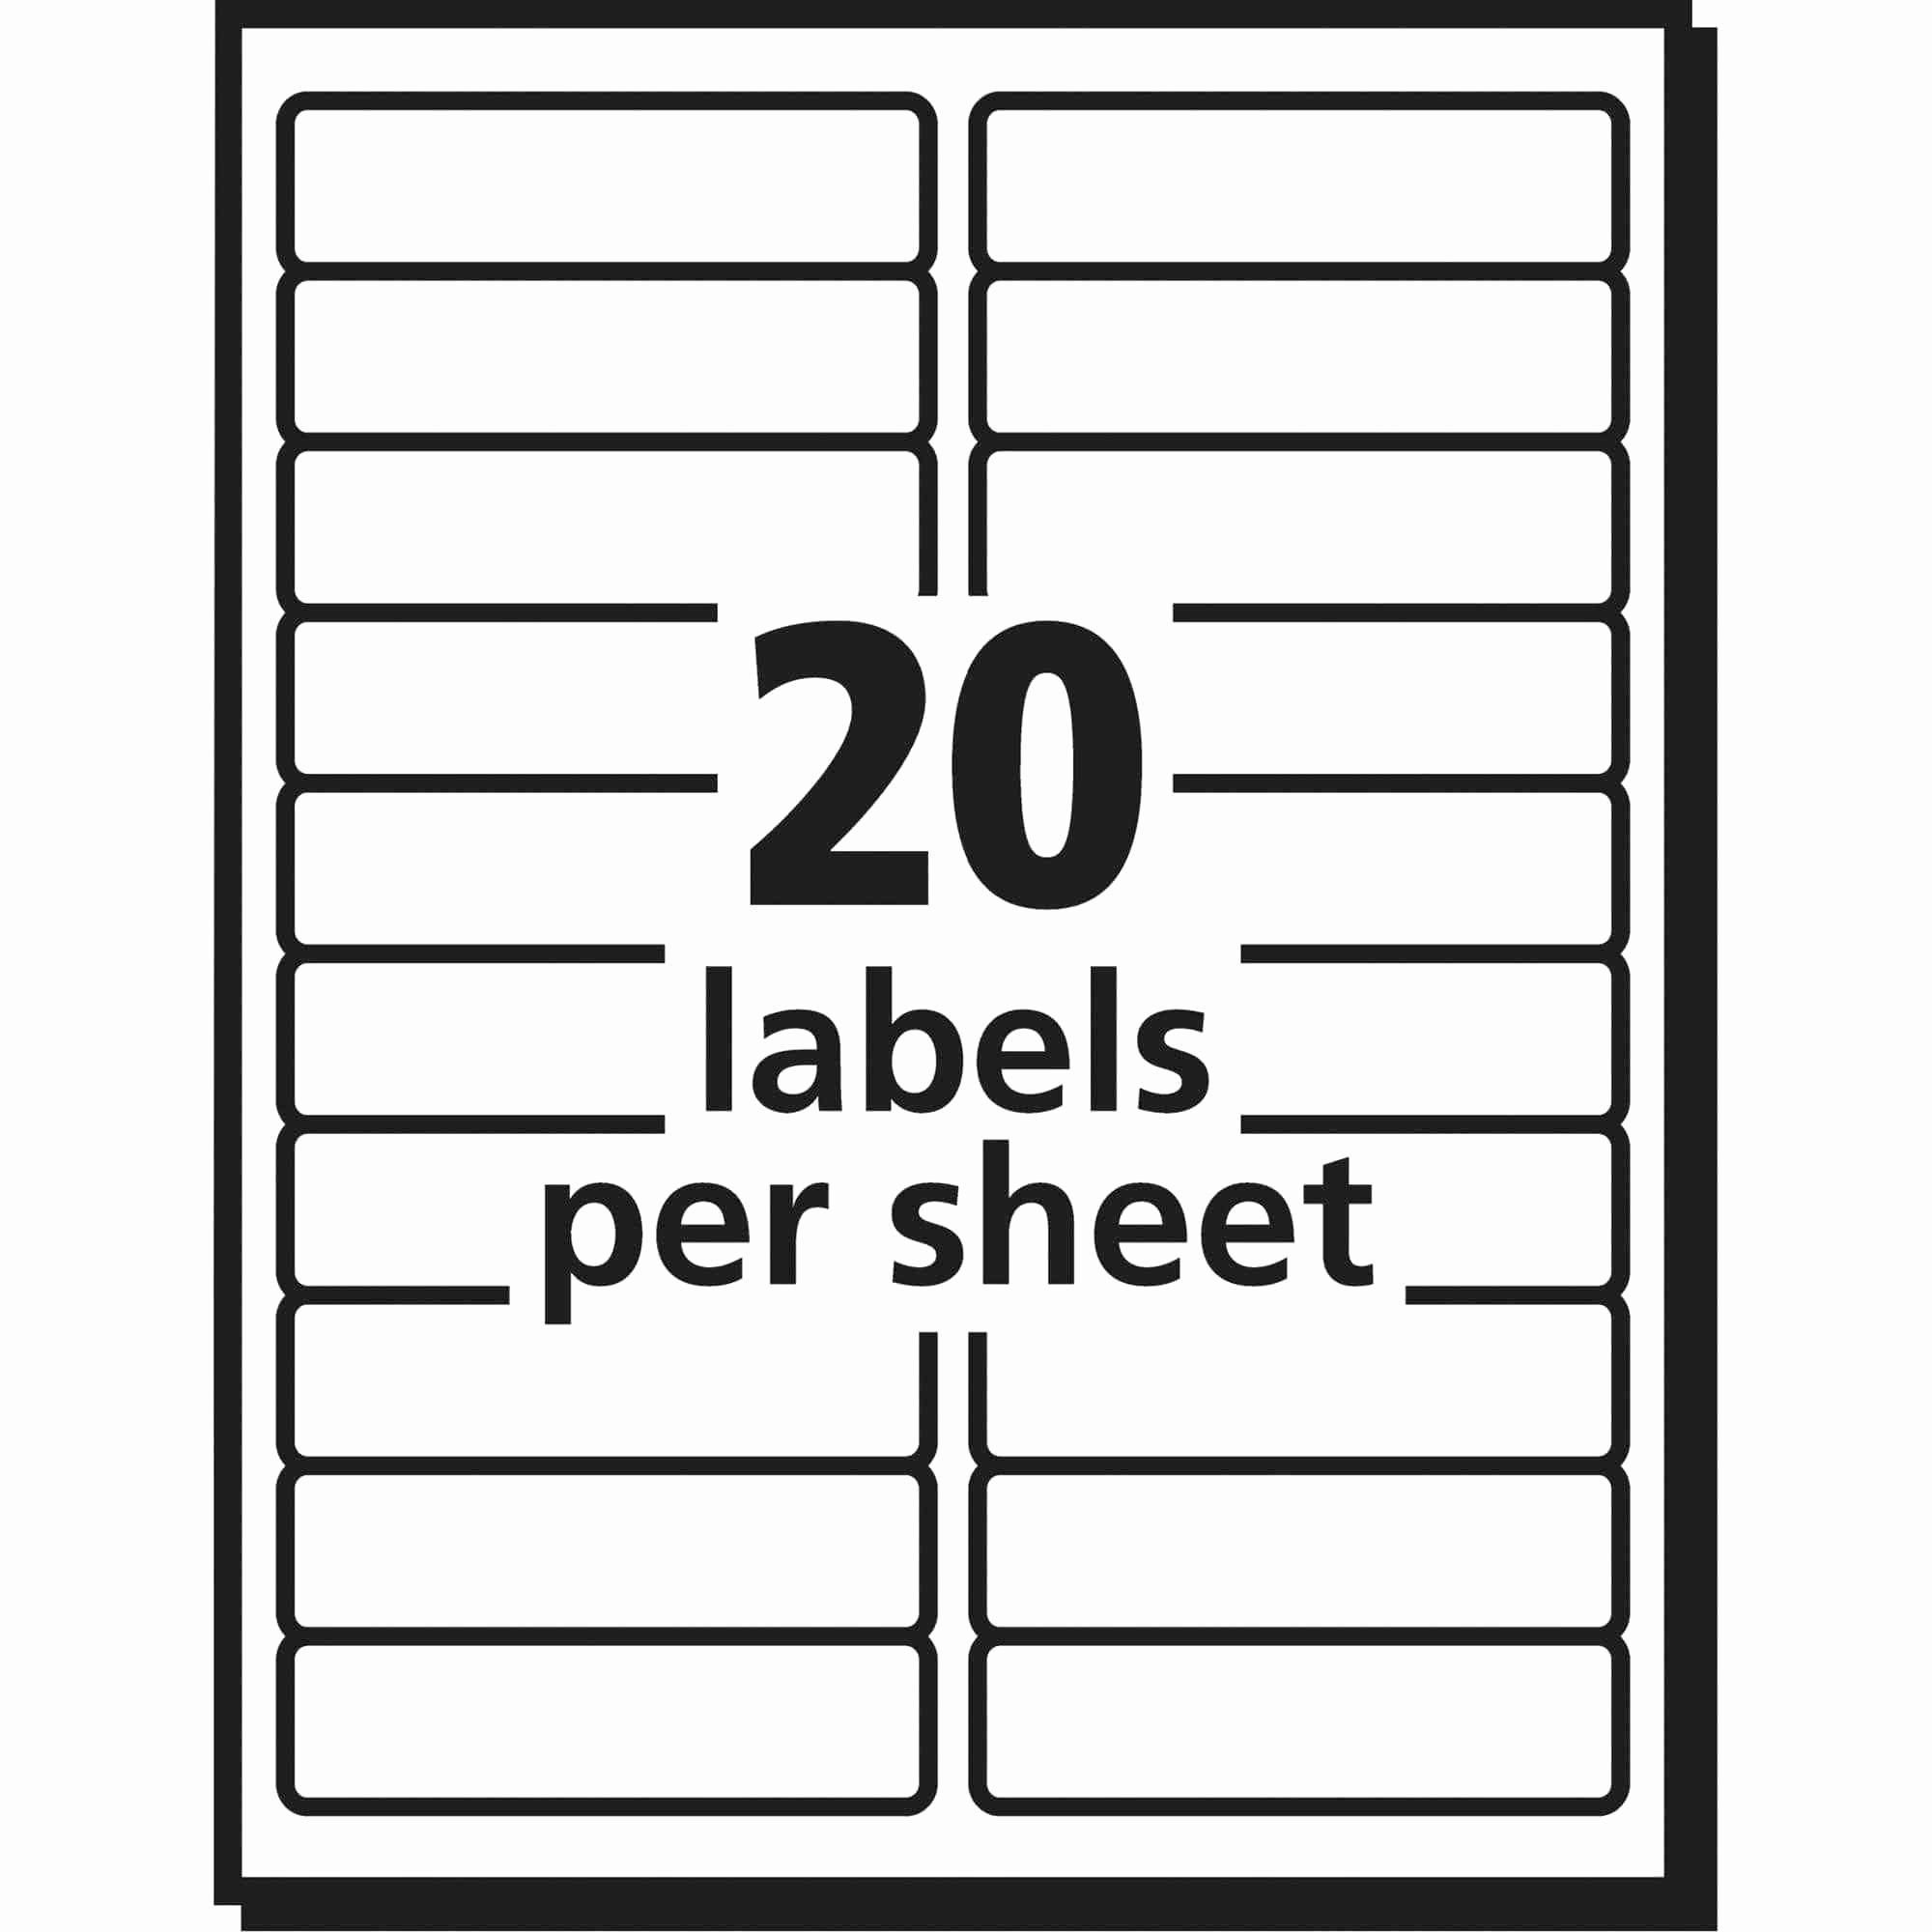 Avery Labels 8160 Template Gallery Template Design Ideas Return Address Labels Template Address Label Template Label Templates Free printable address labels template